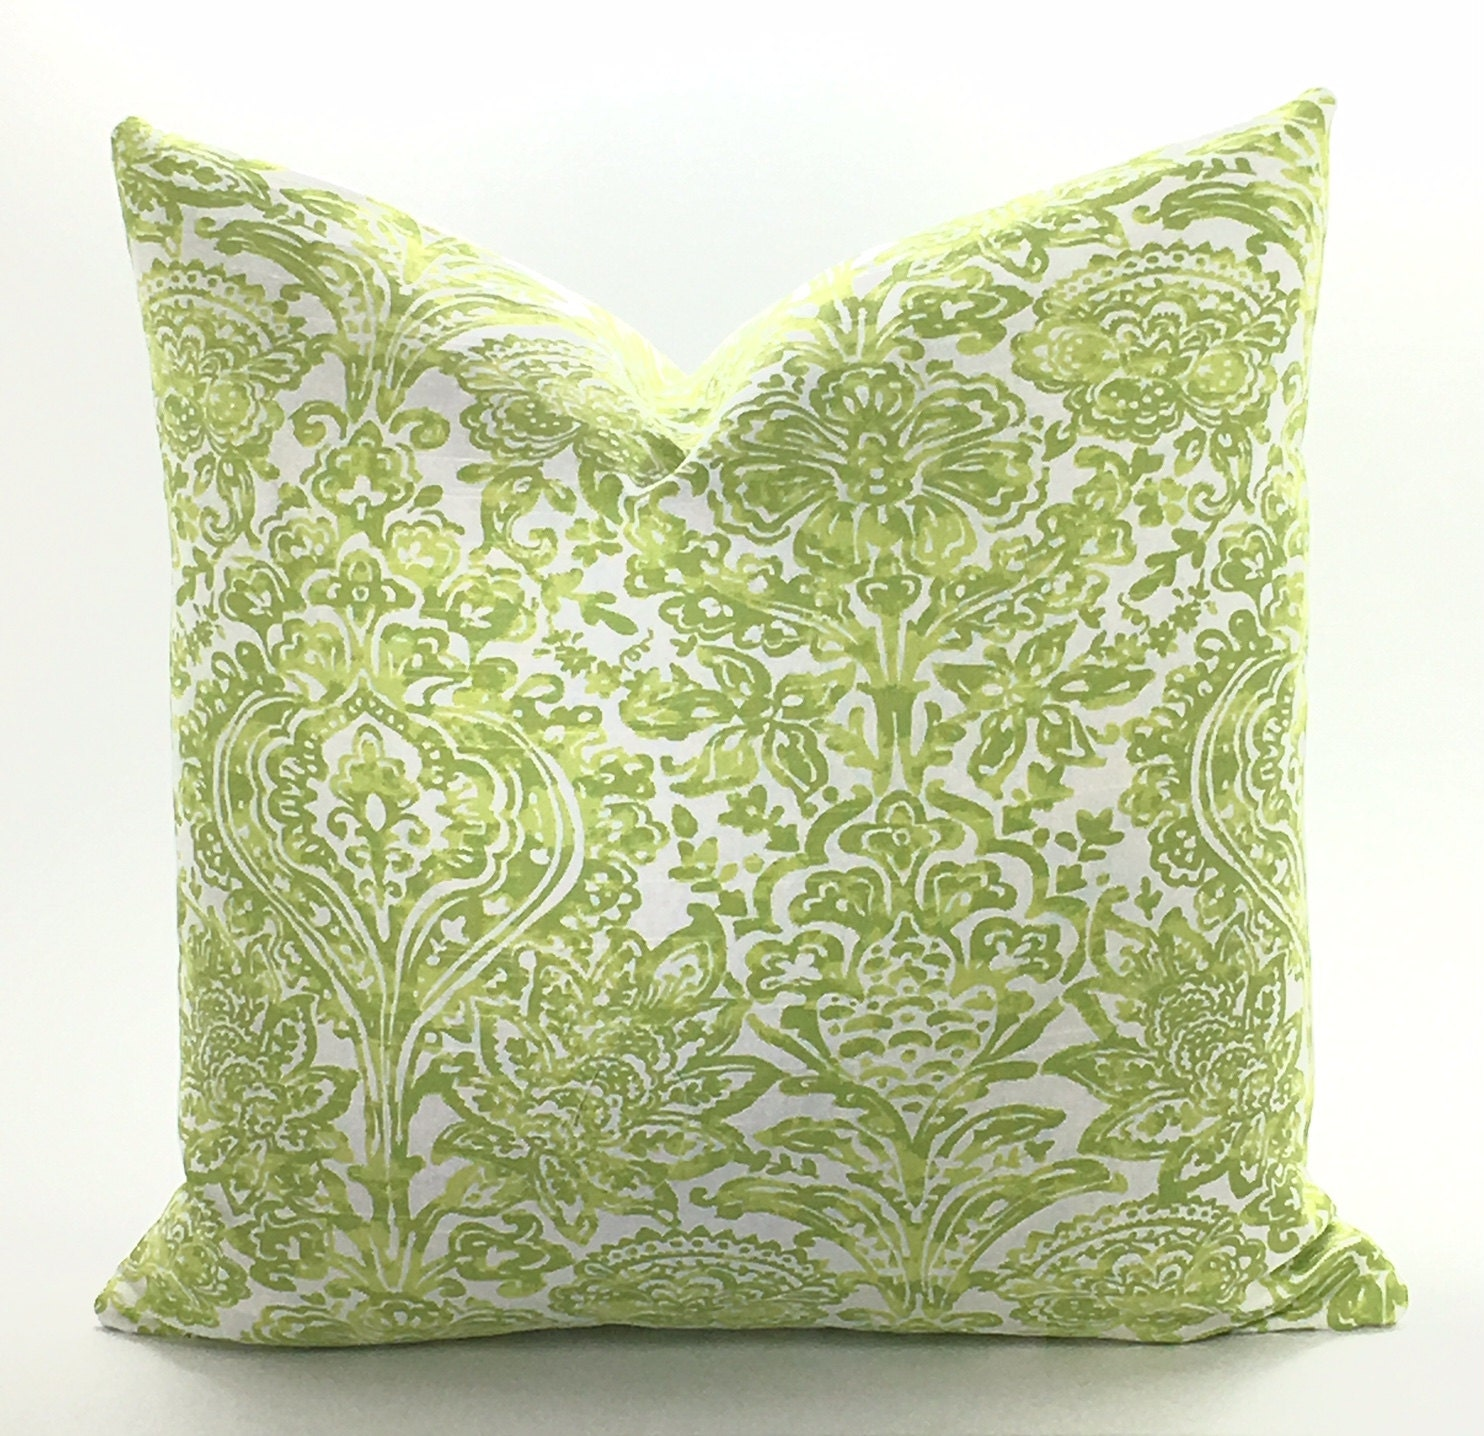 Decorative Pillow Covers With Zippers : Decorative Pillow Covers Invisible Zipper Many Standard